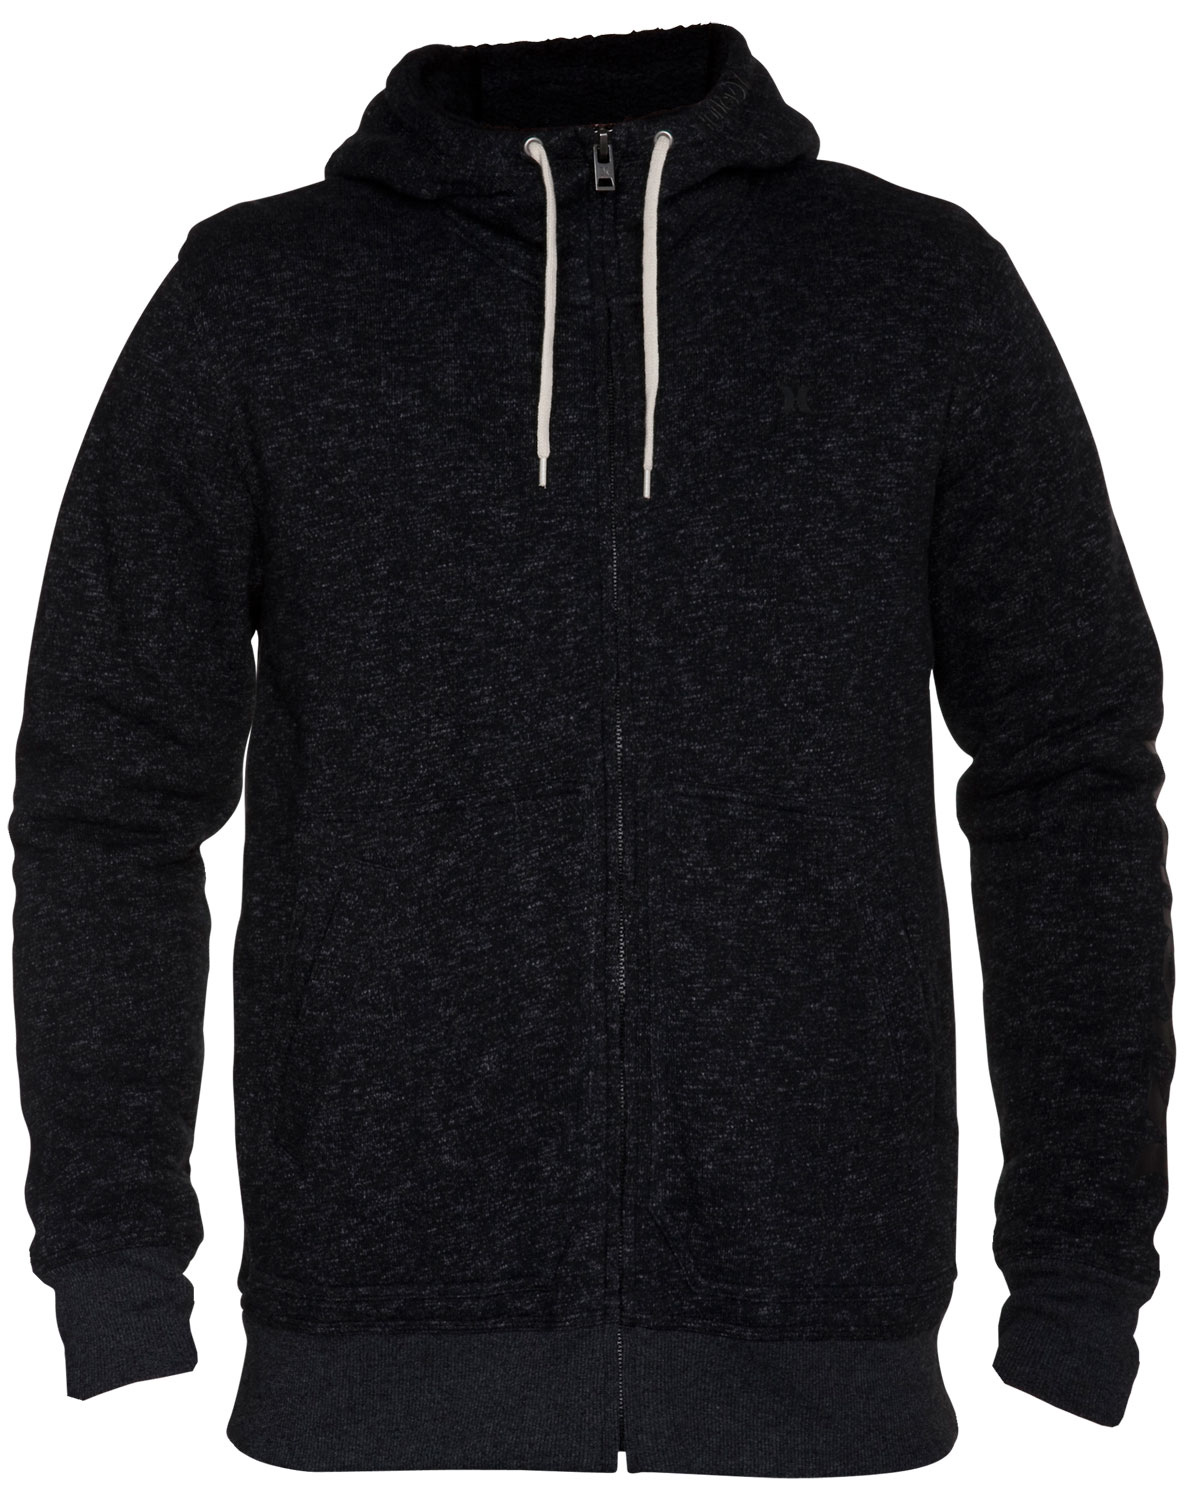 Surf Key Features of the Hurley Retreat Zip Hoodie: Regular Fit 60% Cotton/40% Polyester 270g Yarn Dye Slub contrast brush back French Terry. Zip fleece with plastic molded zipper and pouch pocket. Contrast drawcords and high density icon at left chest. Hurley high density at left hood. - $41.95